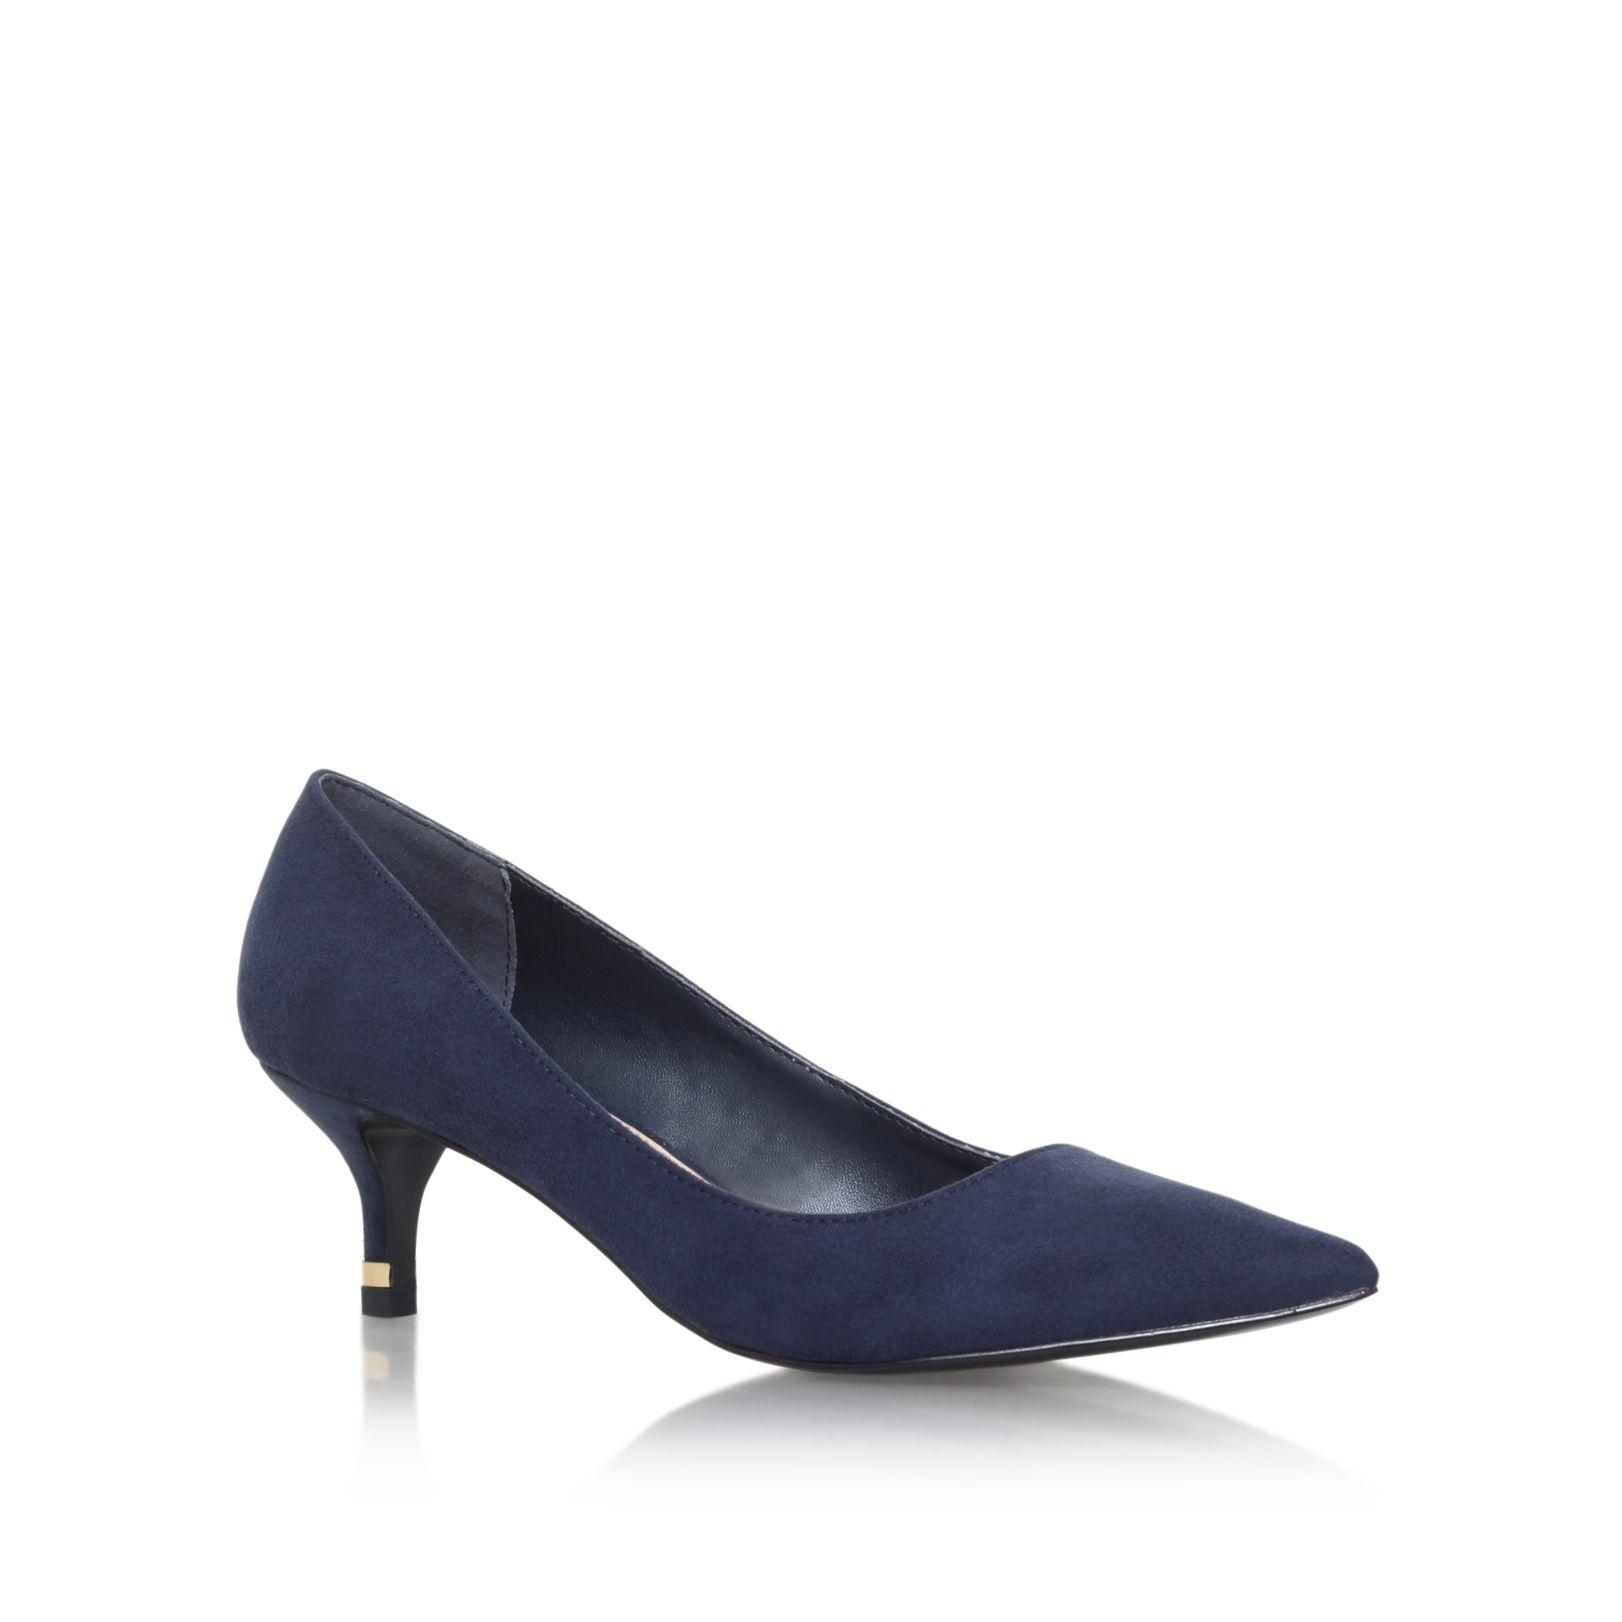 Navy Court Shoes Mid Heel Australia